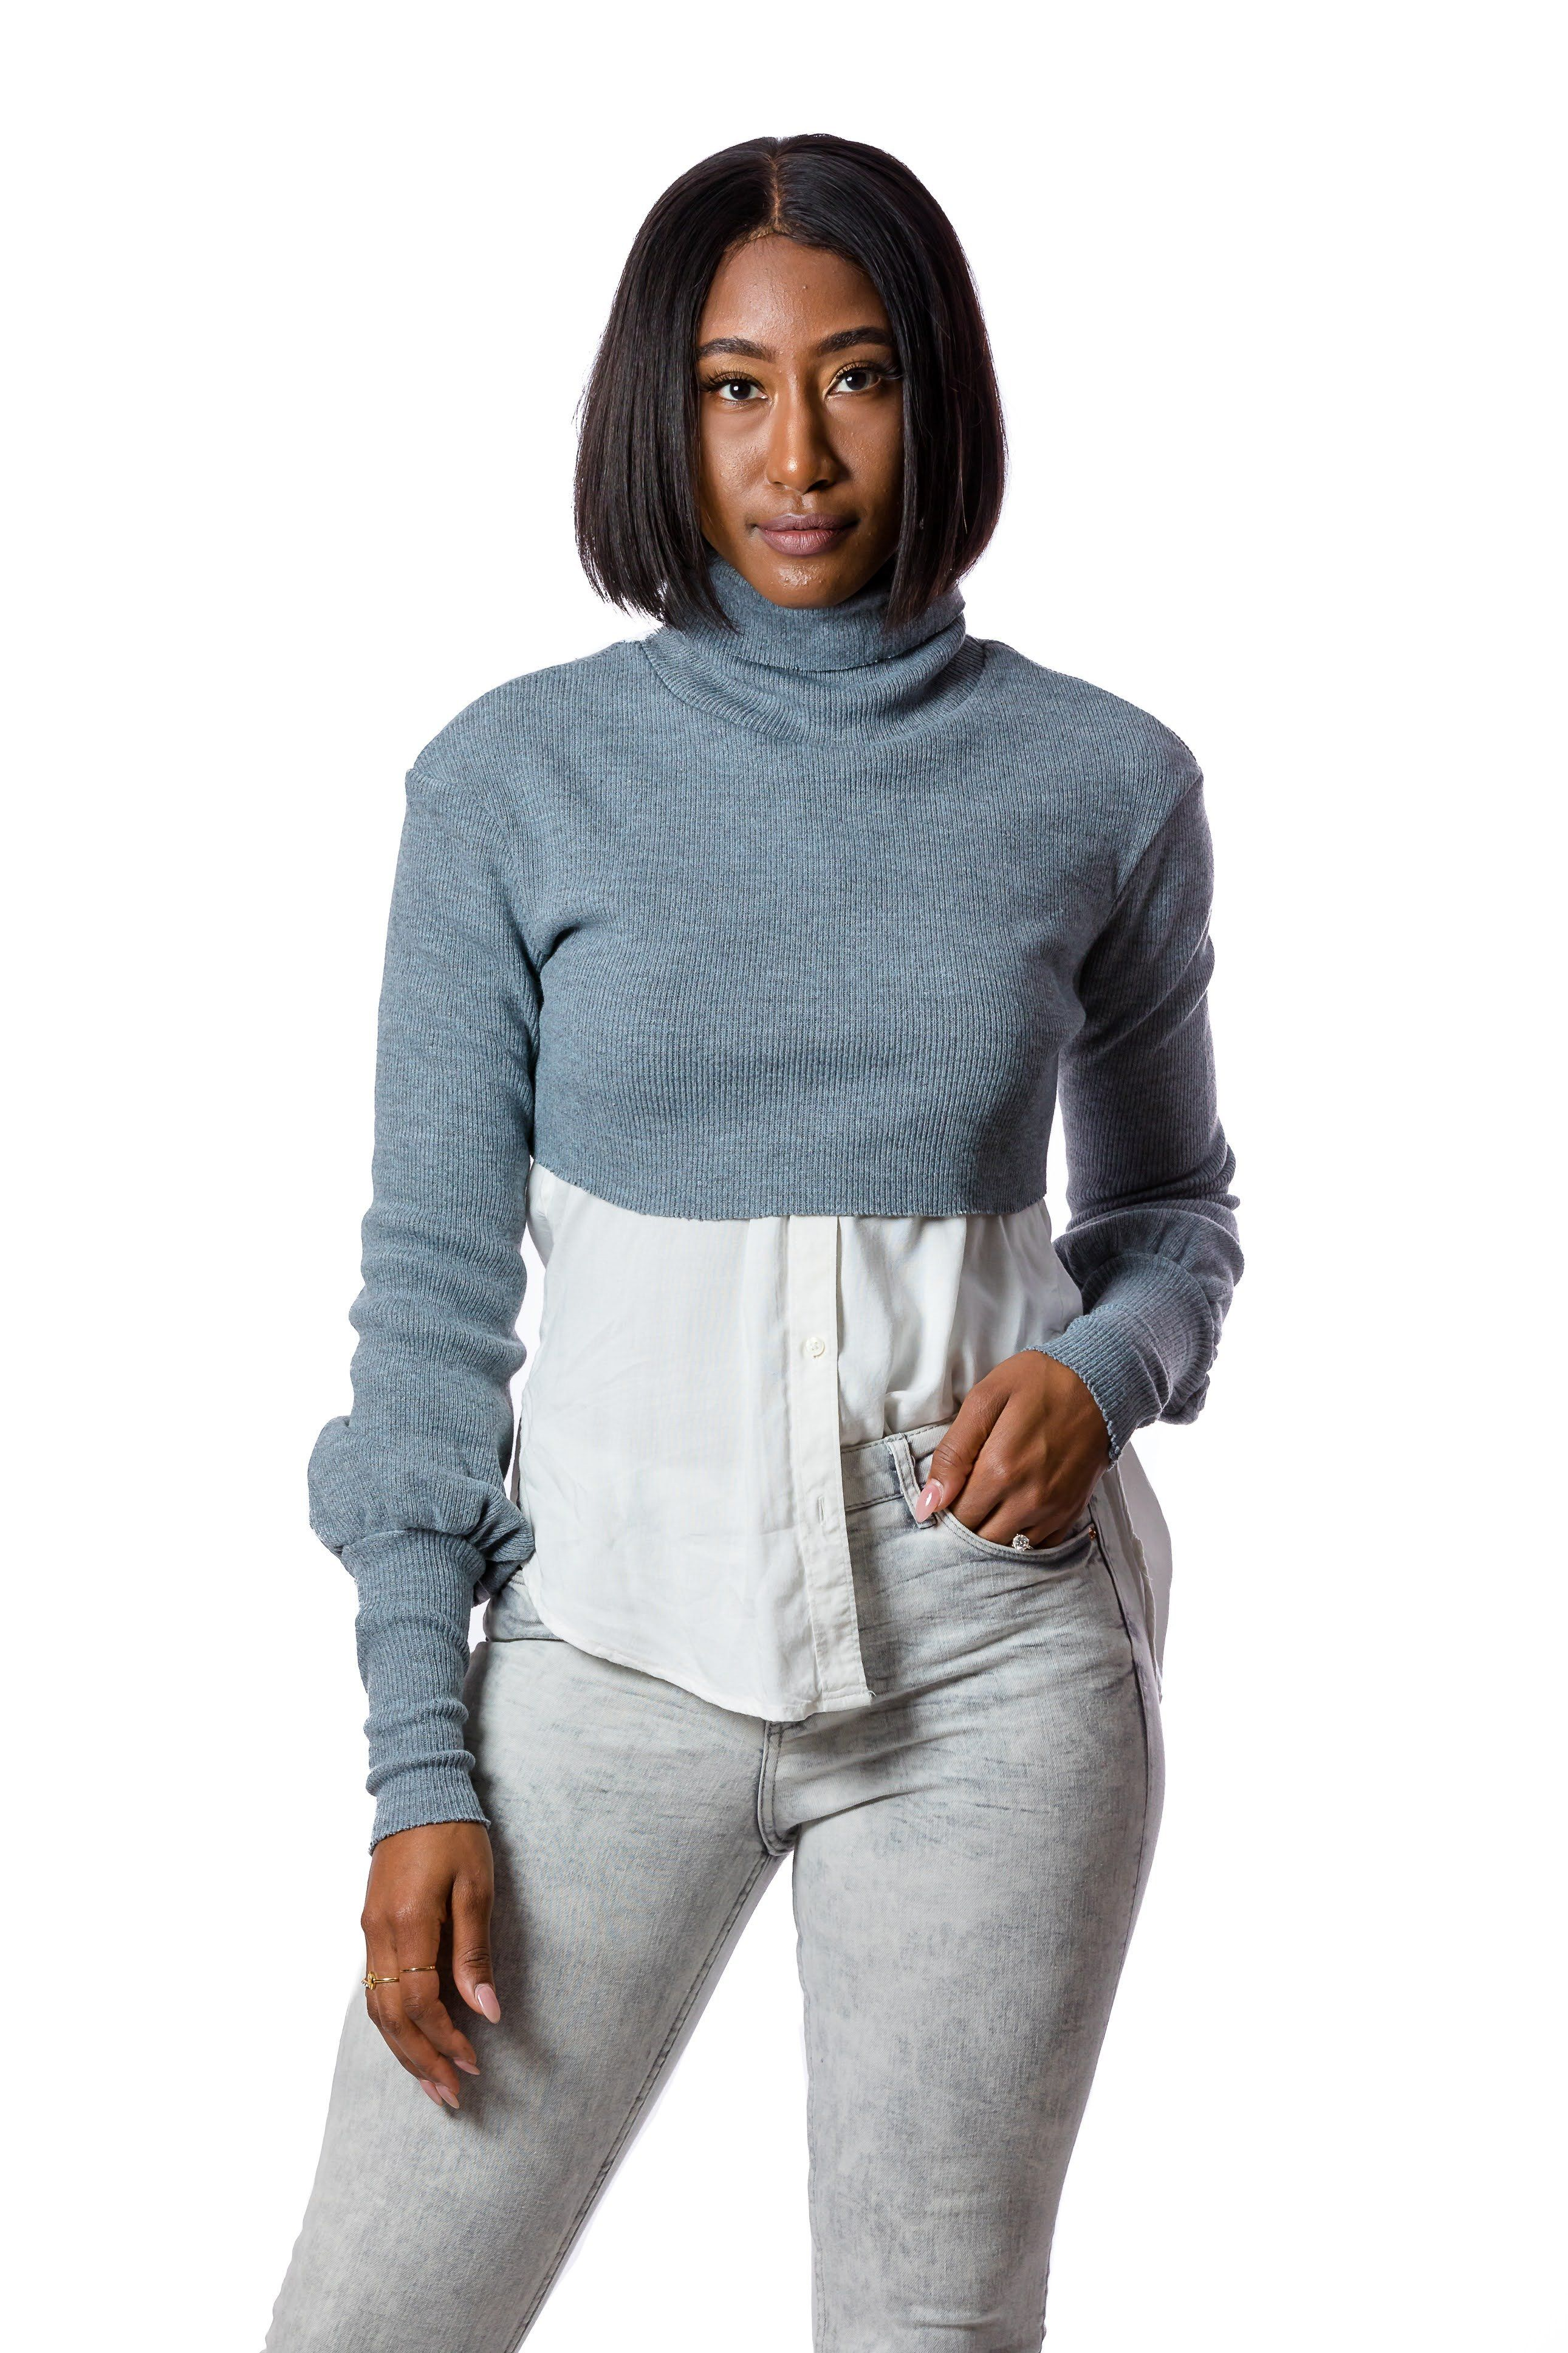 Sweater Cropped Top - S / Gray